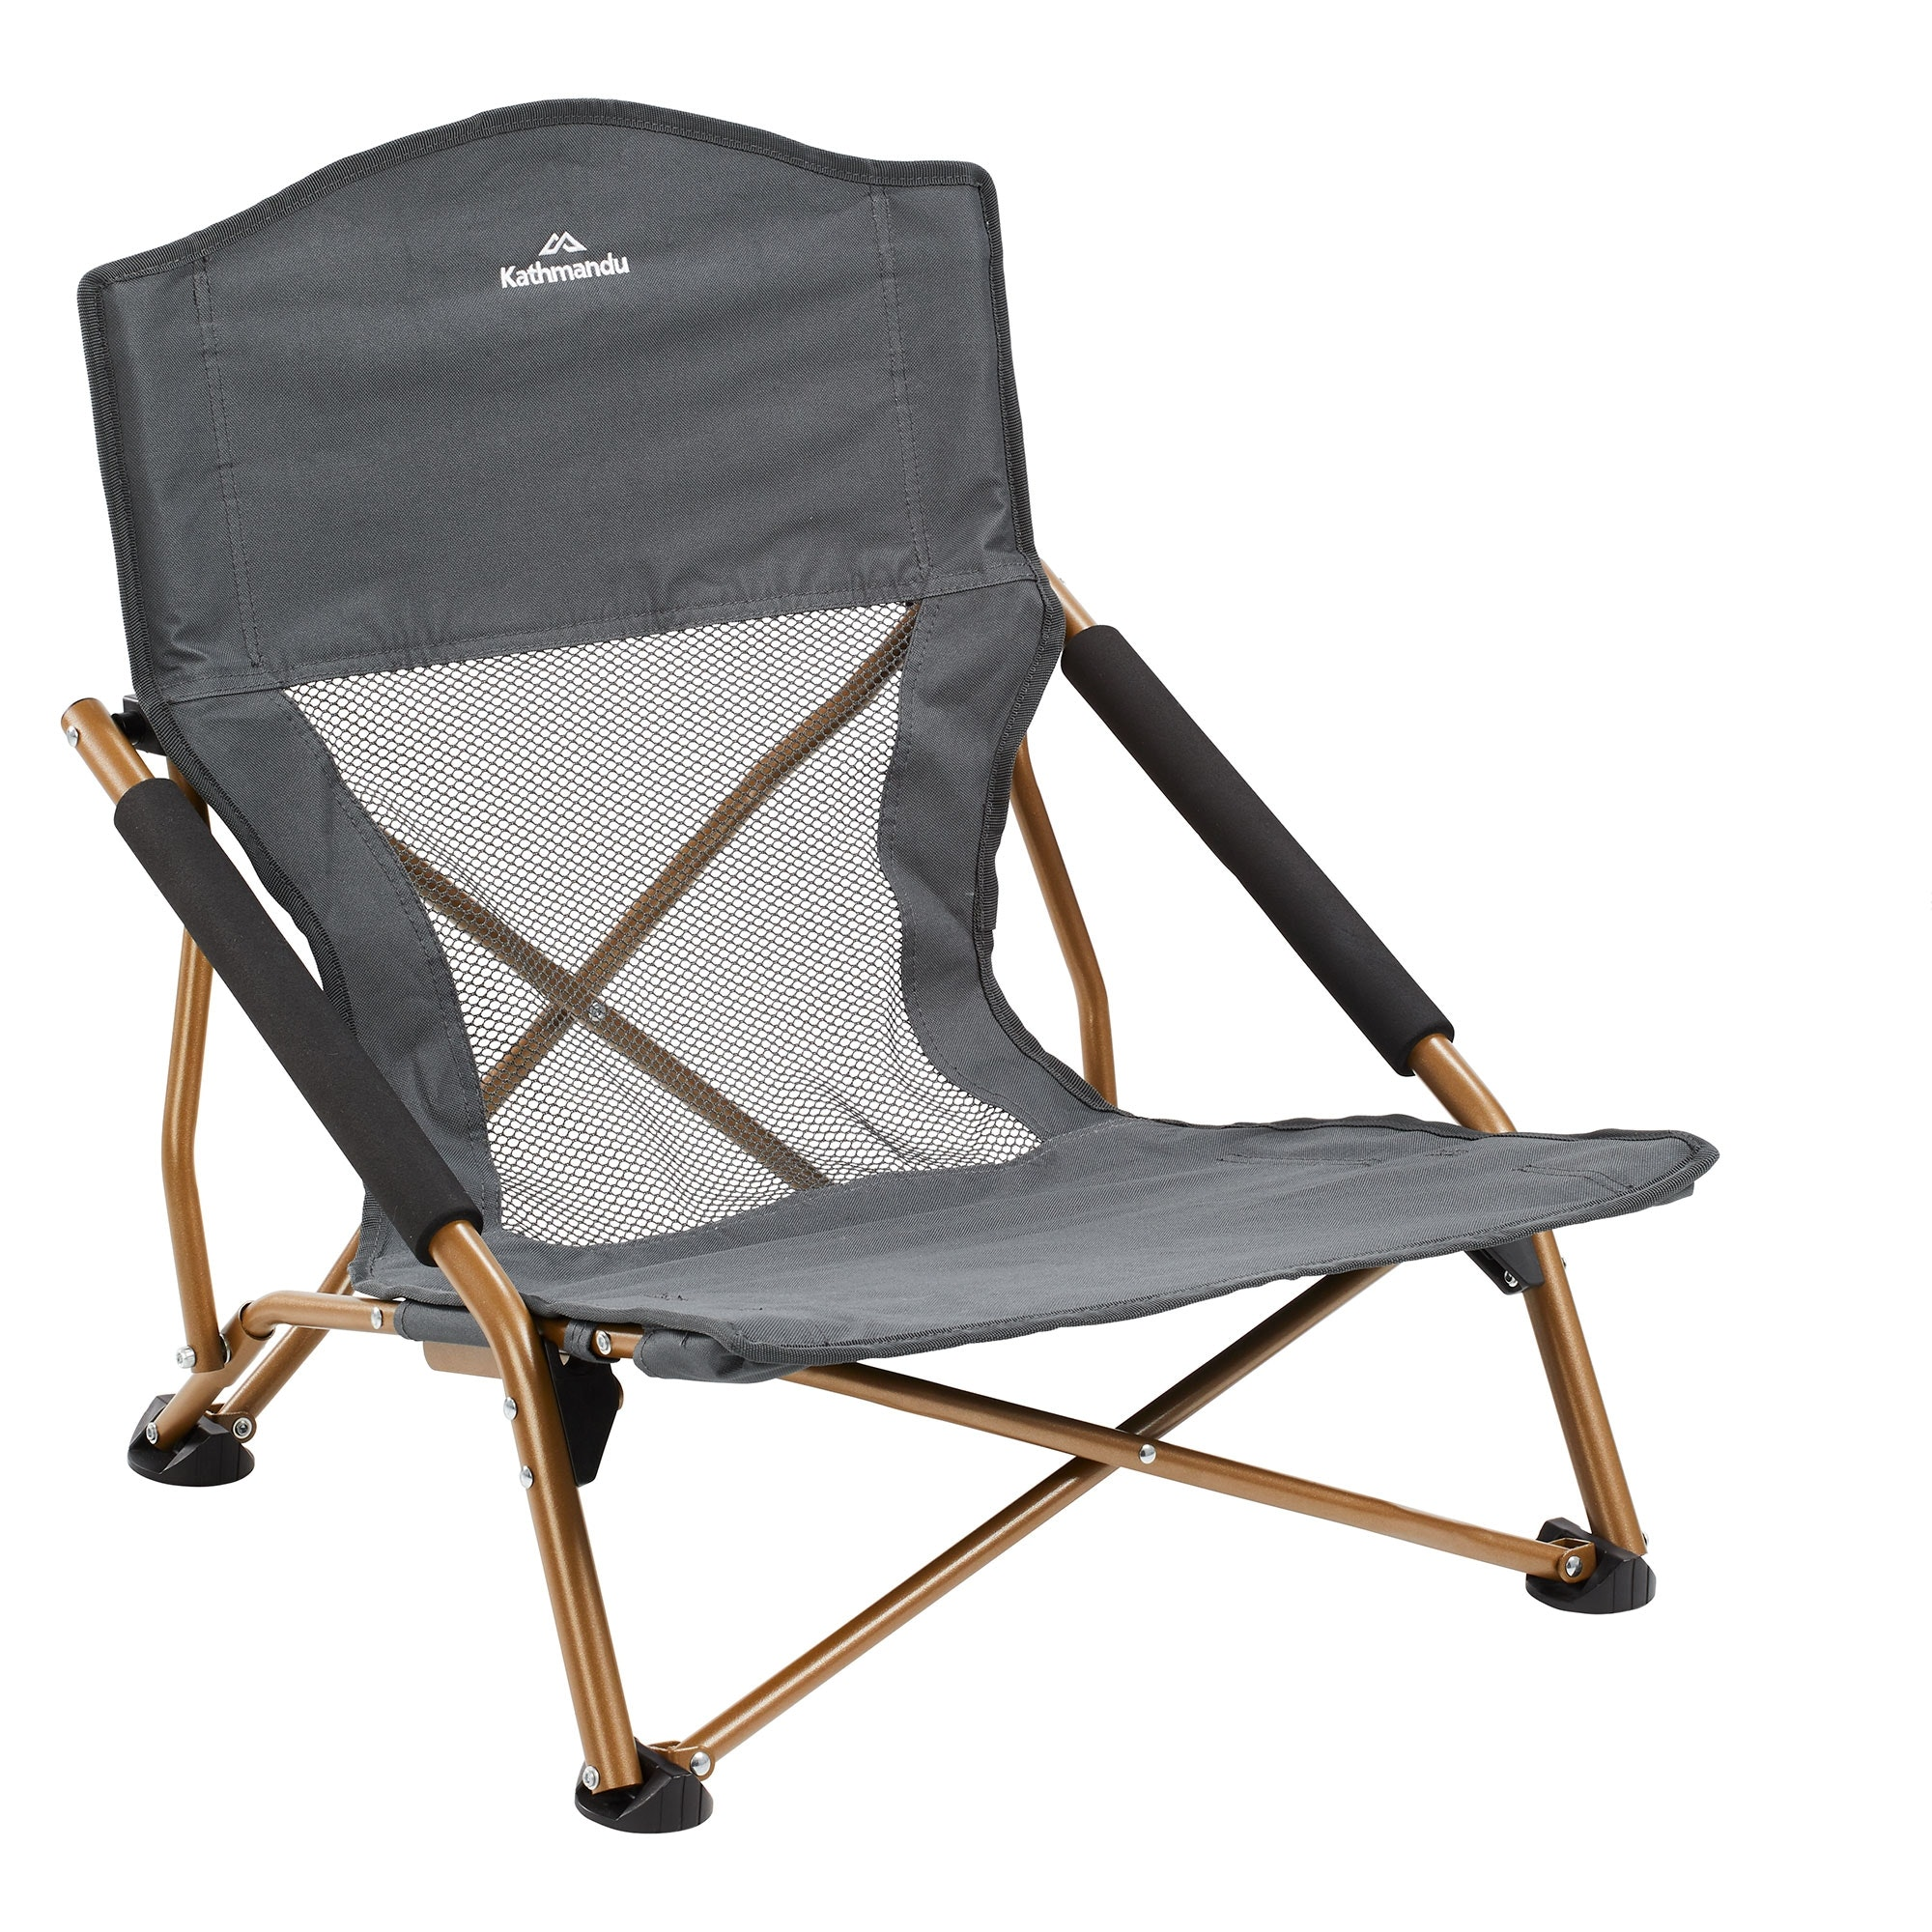 Small Camping Chair Camping Chairs Outdoor Folding Lightweight Picnic Chairs Au